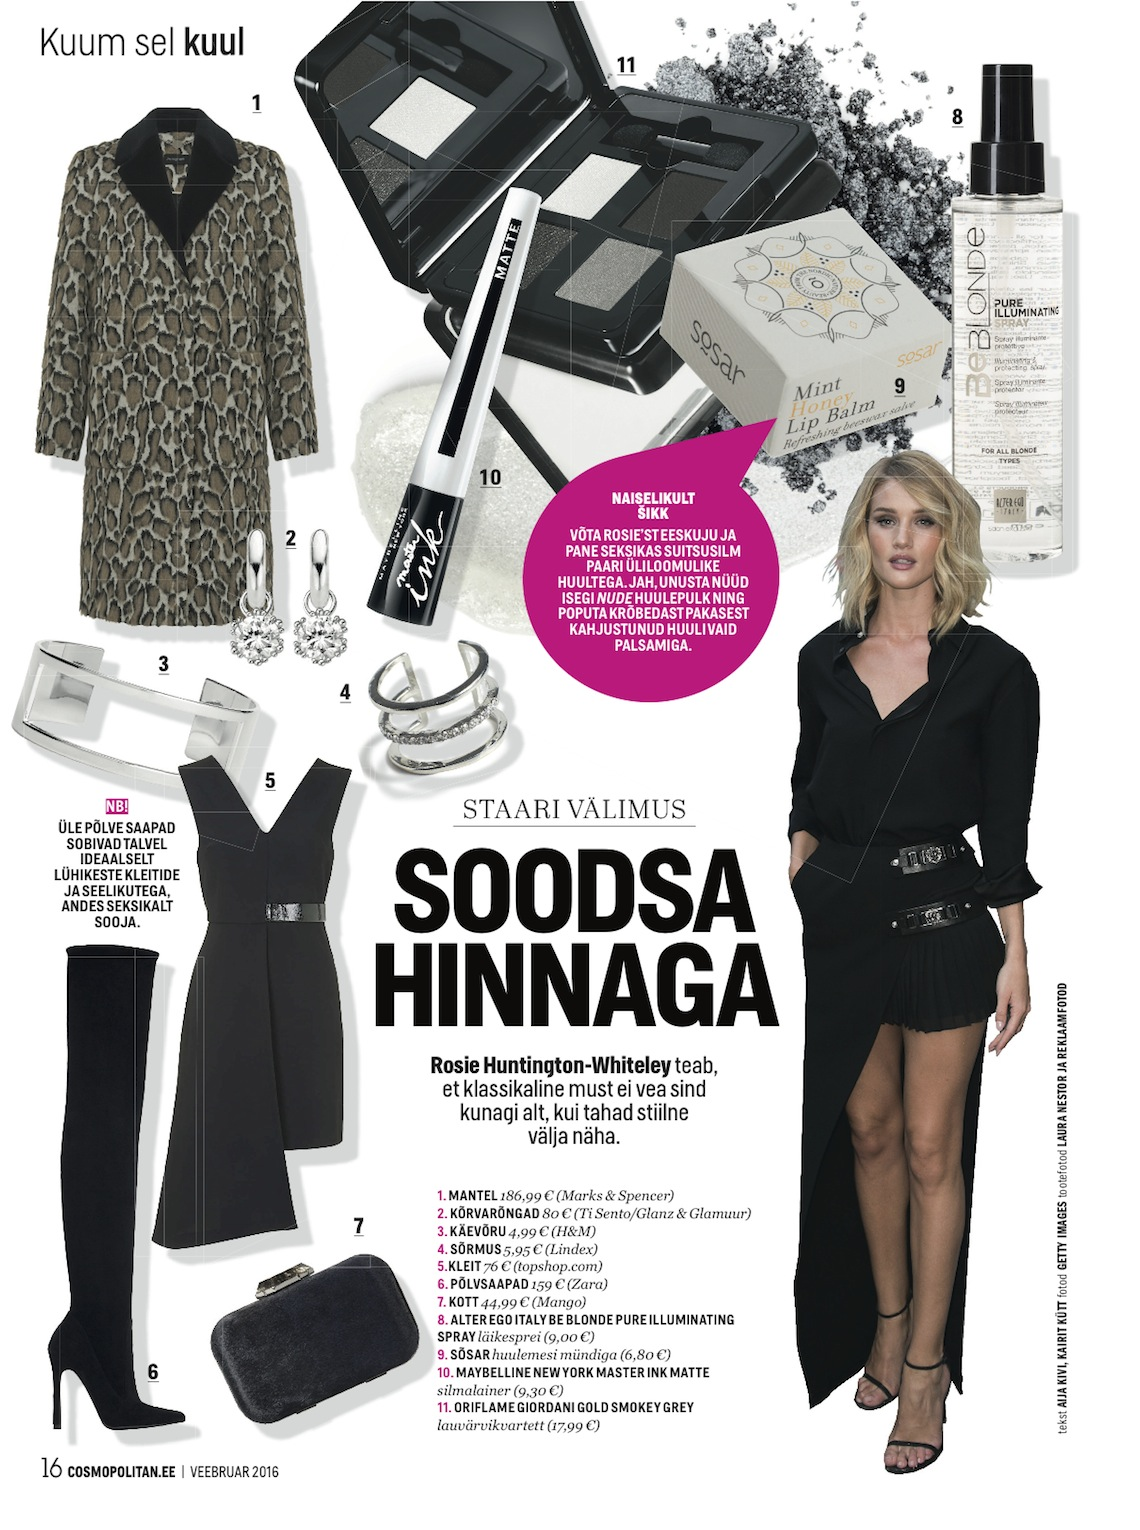 210-aija-kivi-for-cosmopolitan-estonia-magazine-stylist-fashion-editor